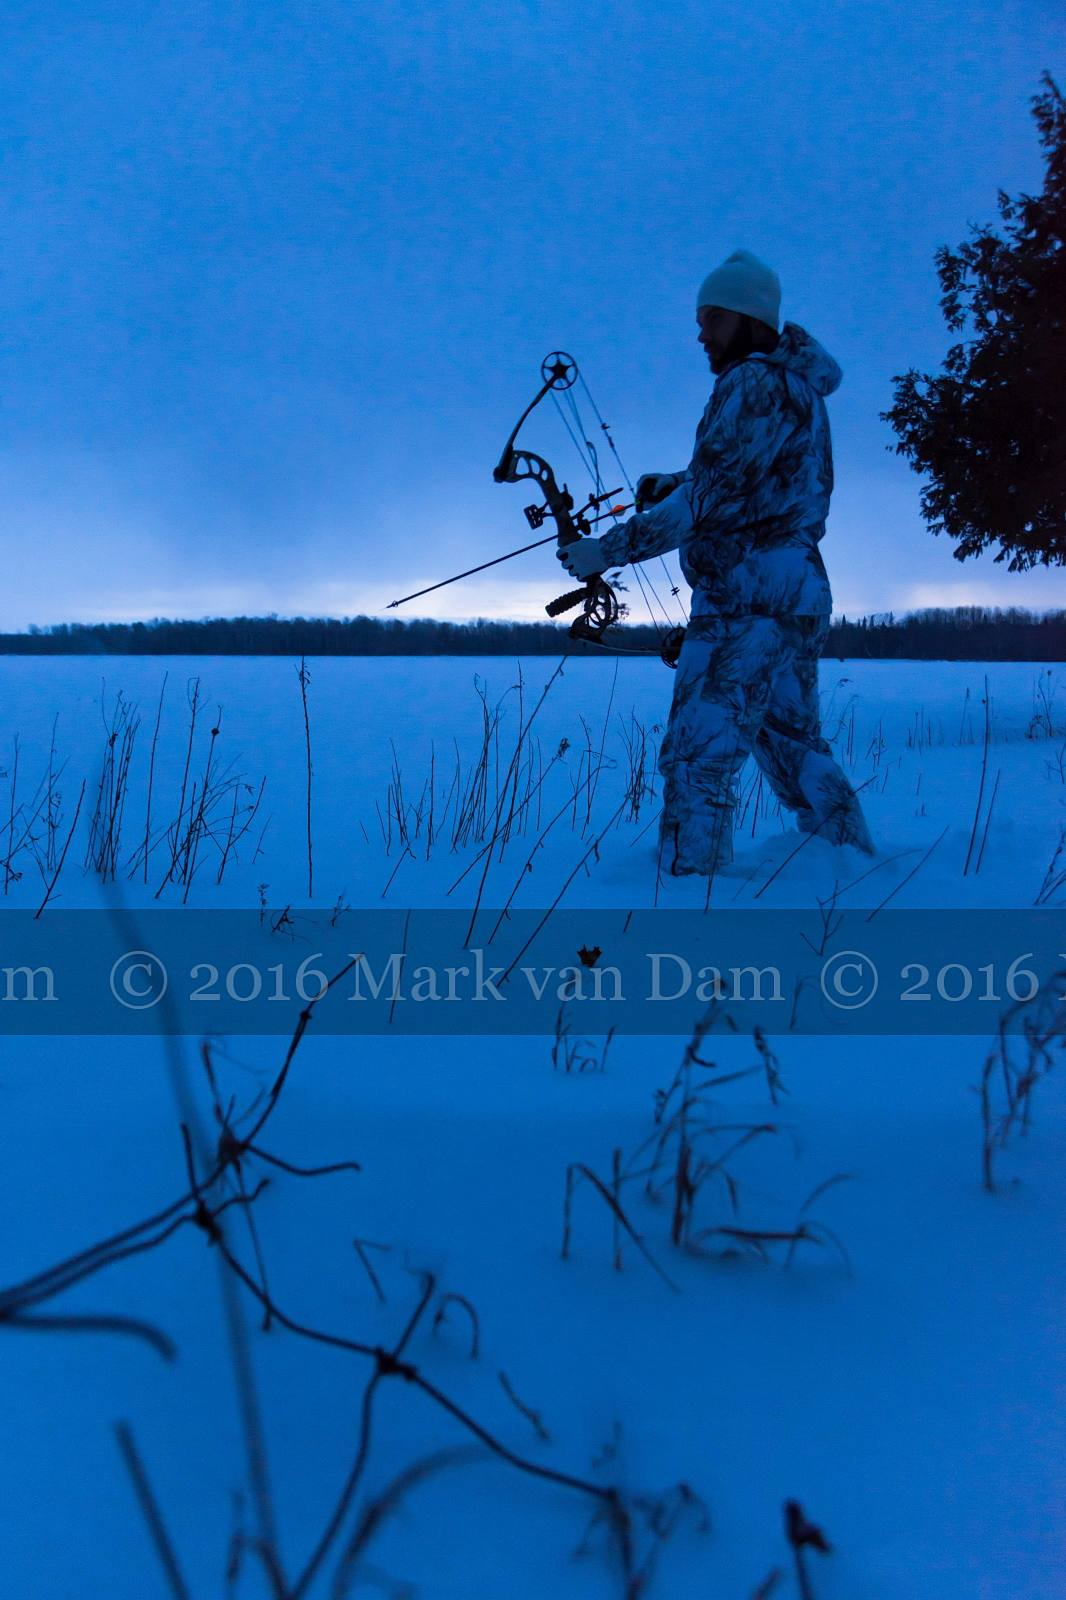 twilight silhouette of compound bow hunter in winter